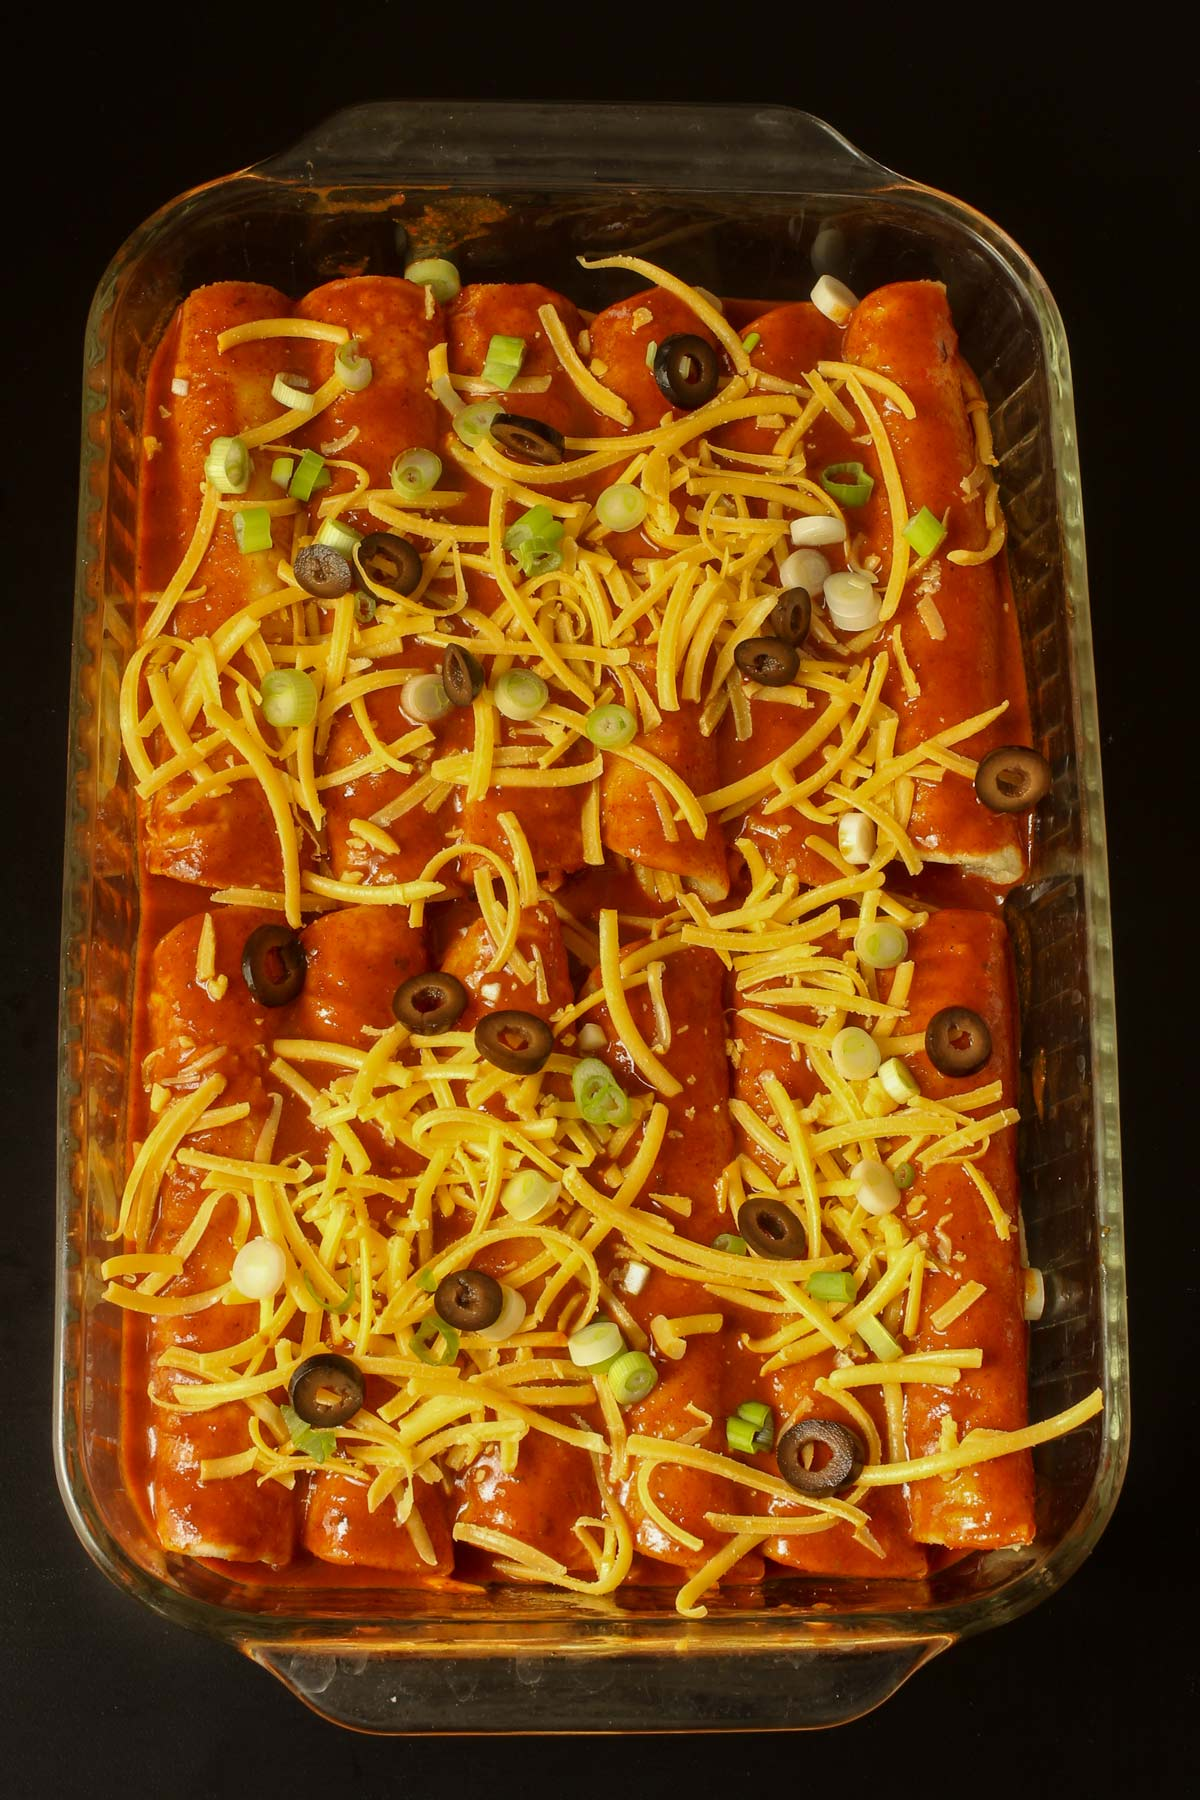 cheese enchiladas assembled in a large glass baking dish.